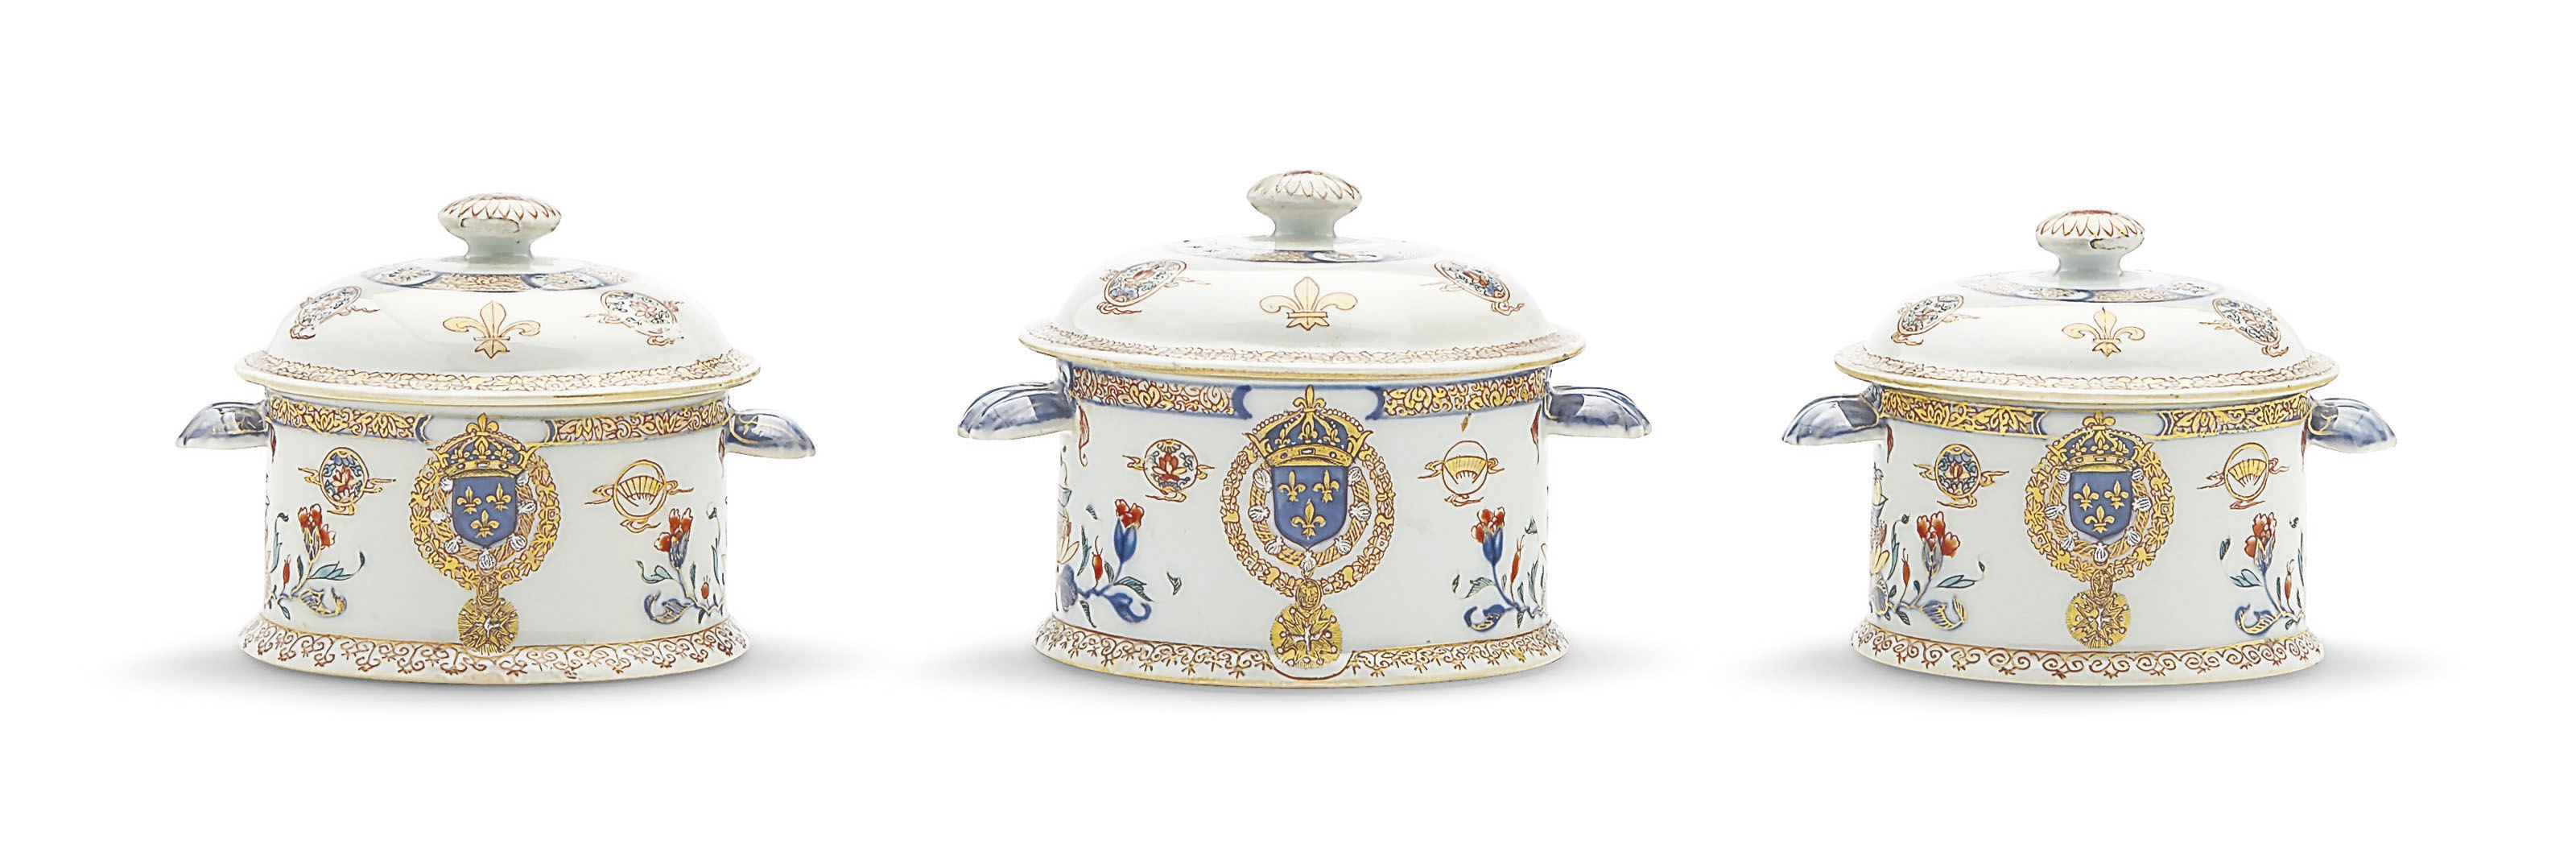 A SET OF THREE GRADUATED FRENCH ROYAL ARMORIAL ECUELLES AND COVERS